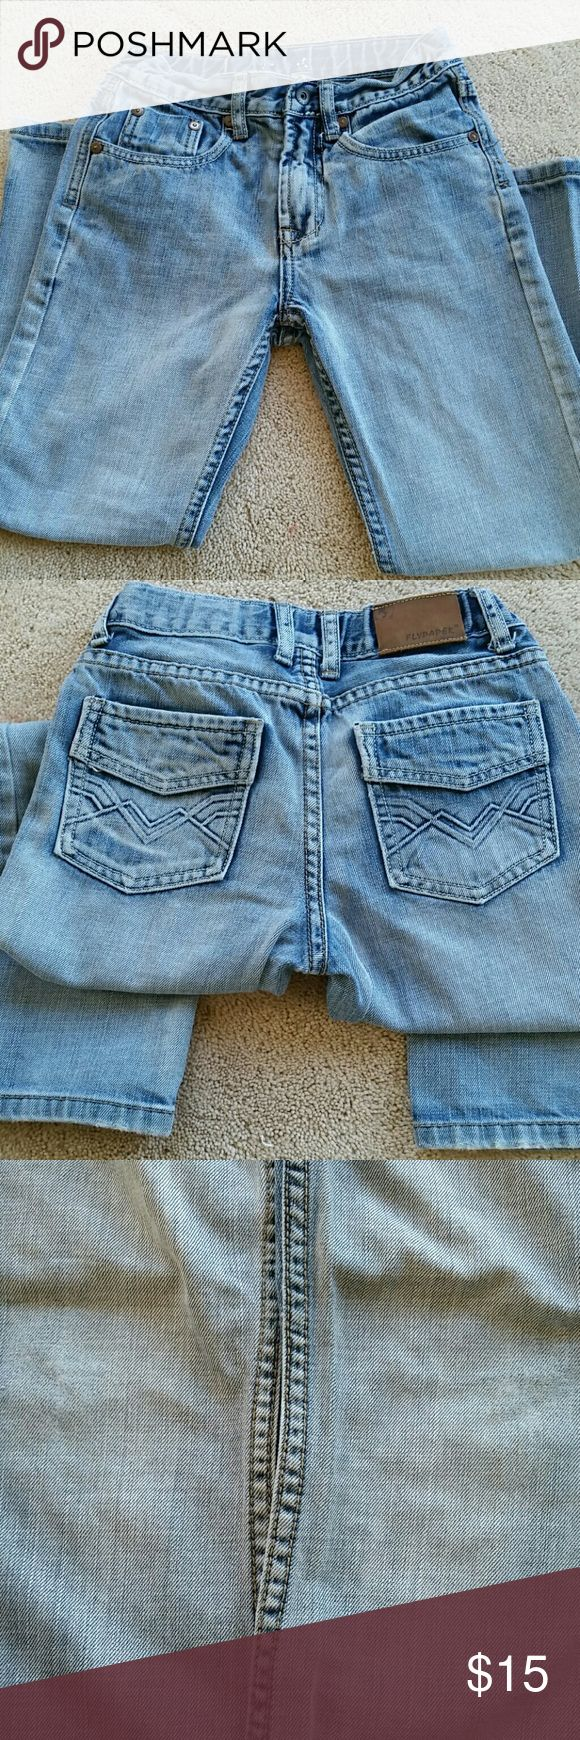 *Boys Flypaper Jeans* Super comfortable and roomy! These were my boys' favorite jeans. We had several pairs. The knees have a little bit of wear but it is not really noticeable.  30% off two or more items! Flypaper Bottoms Jeans